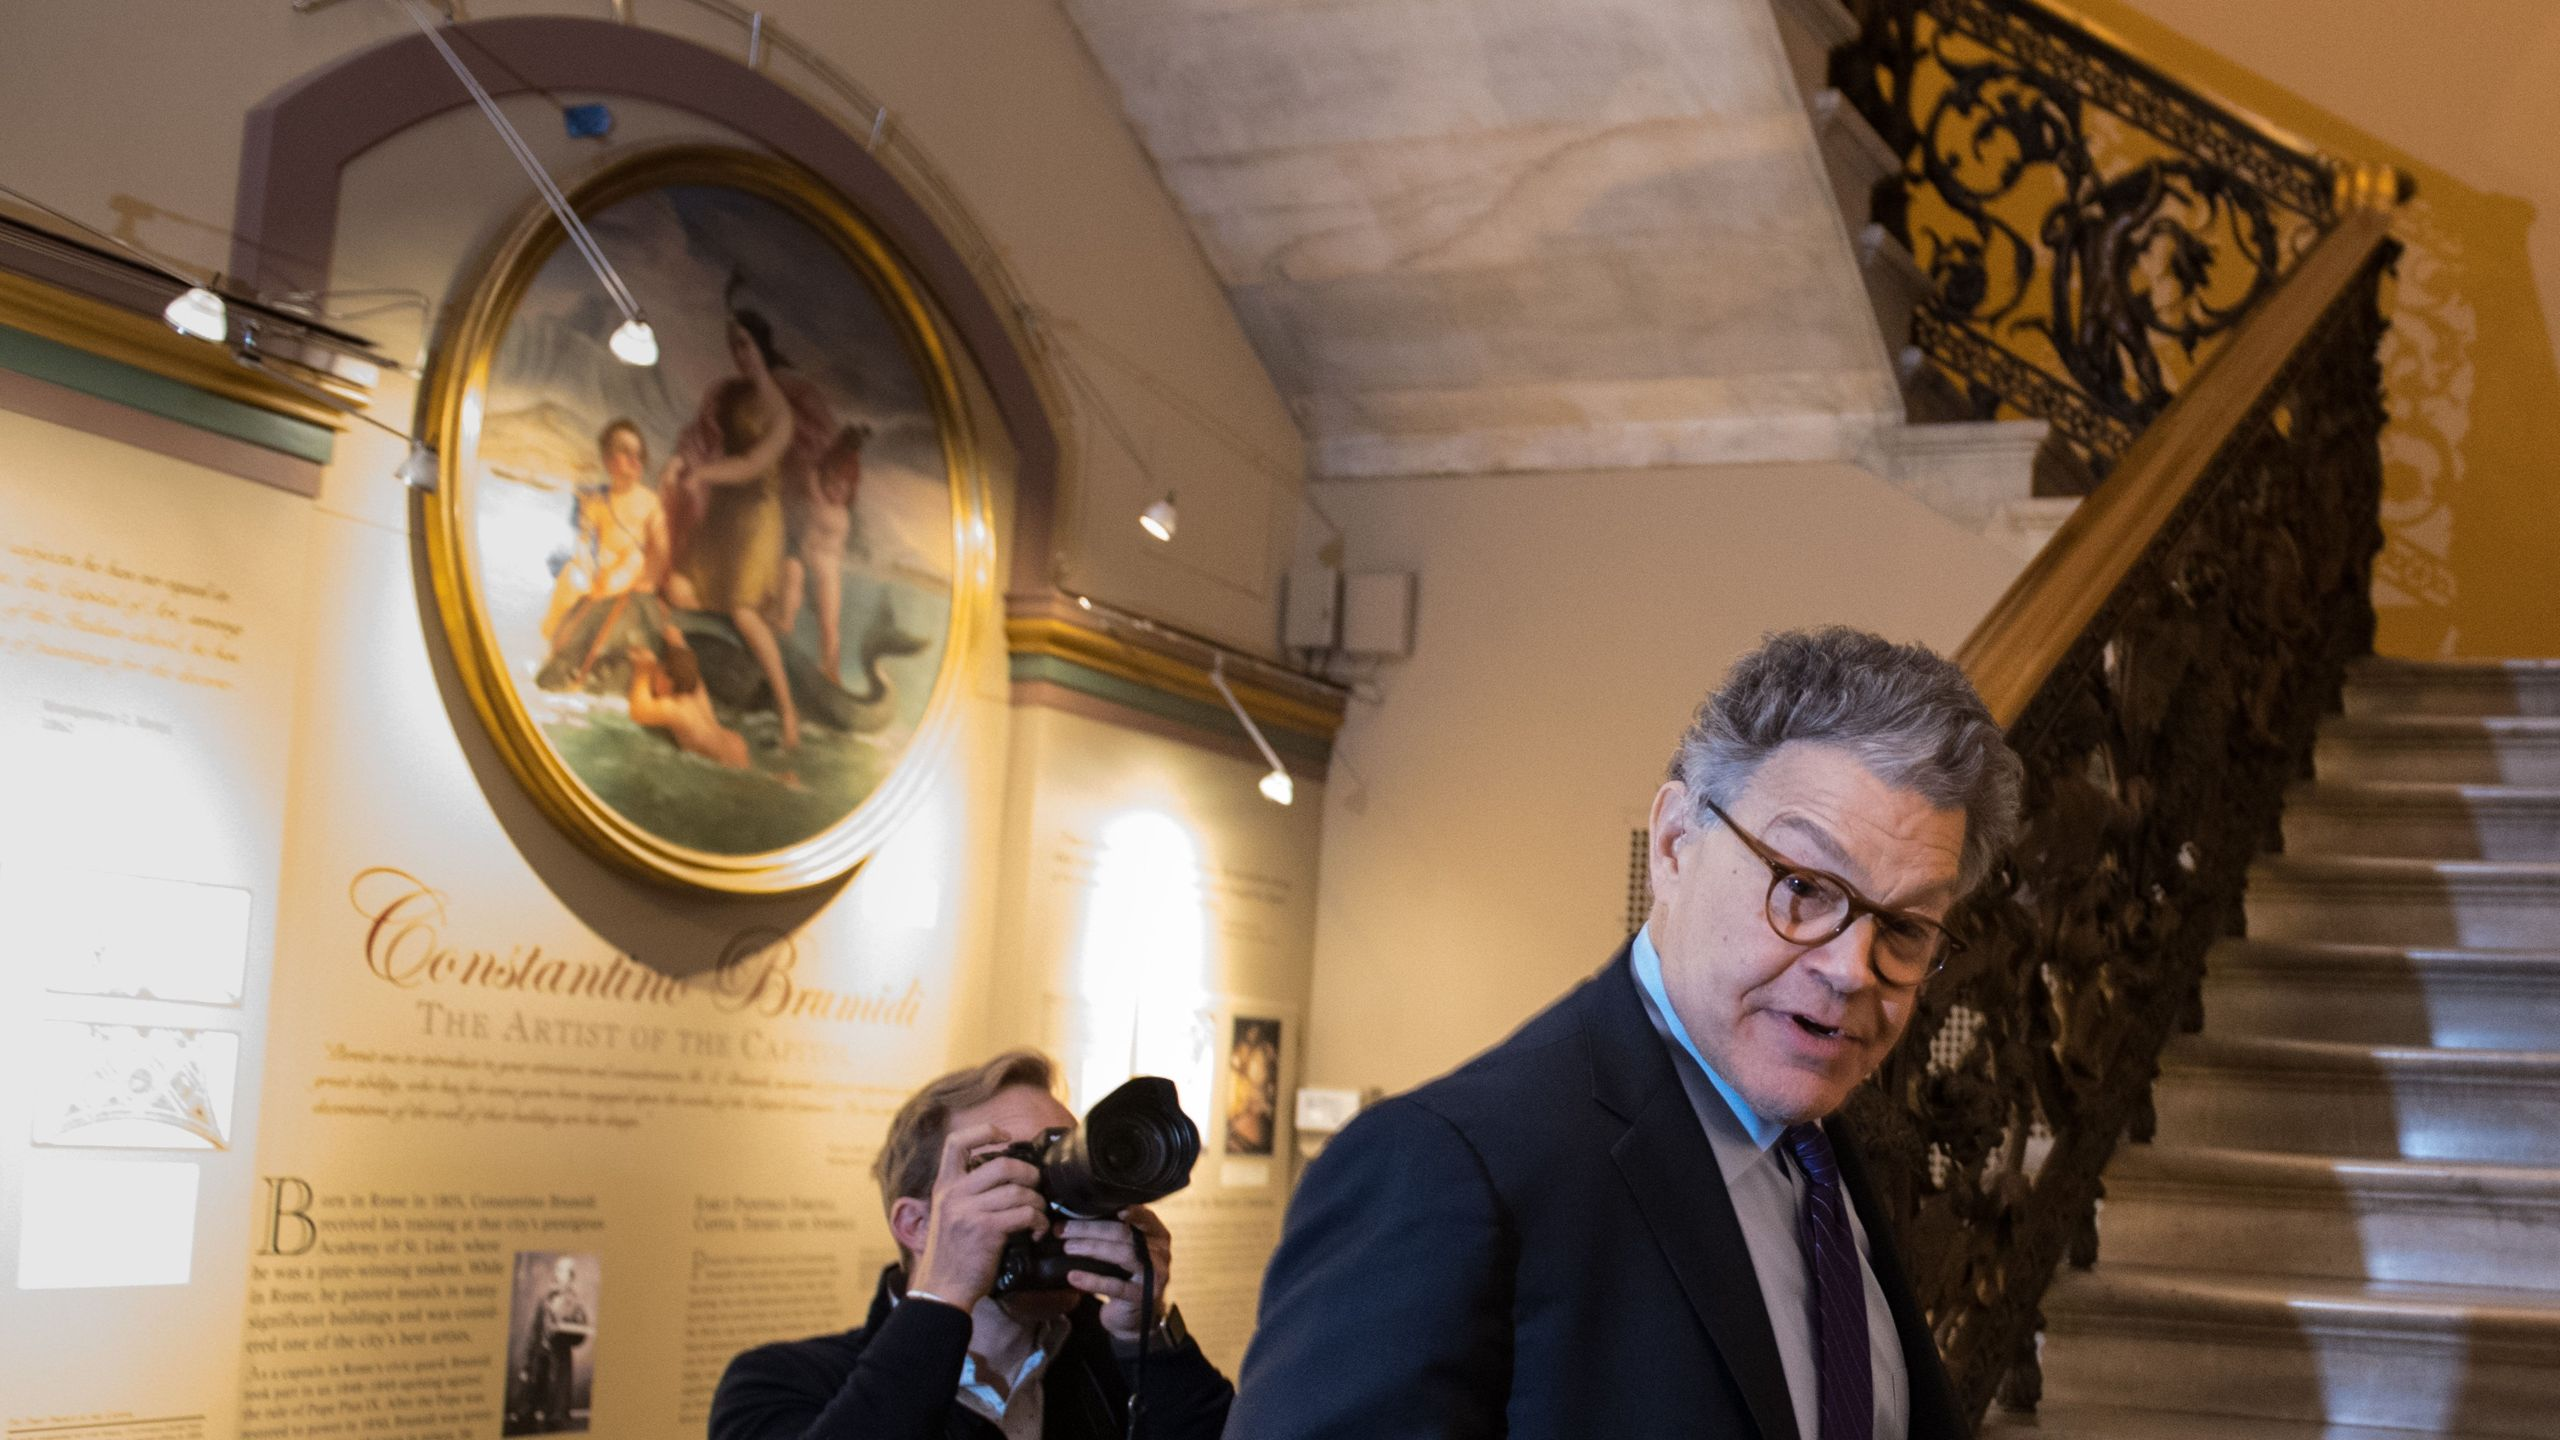 Al Franken arrives at the U.S. Capitol on Dec. 7, 2017 in Washington, D.C. (Credit: MANDEL NGAN/AFP/Getty Images)